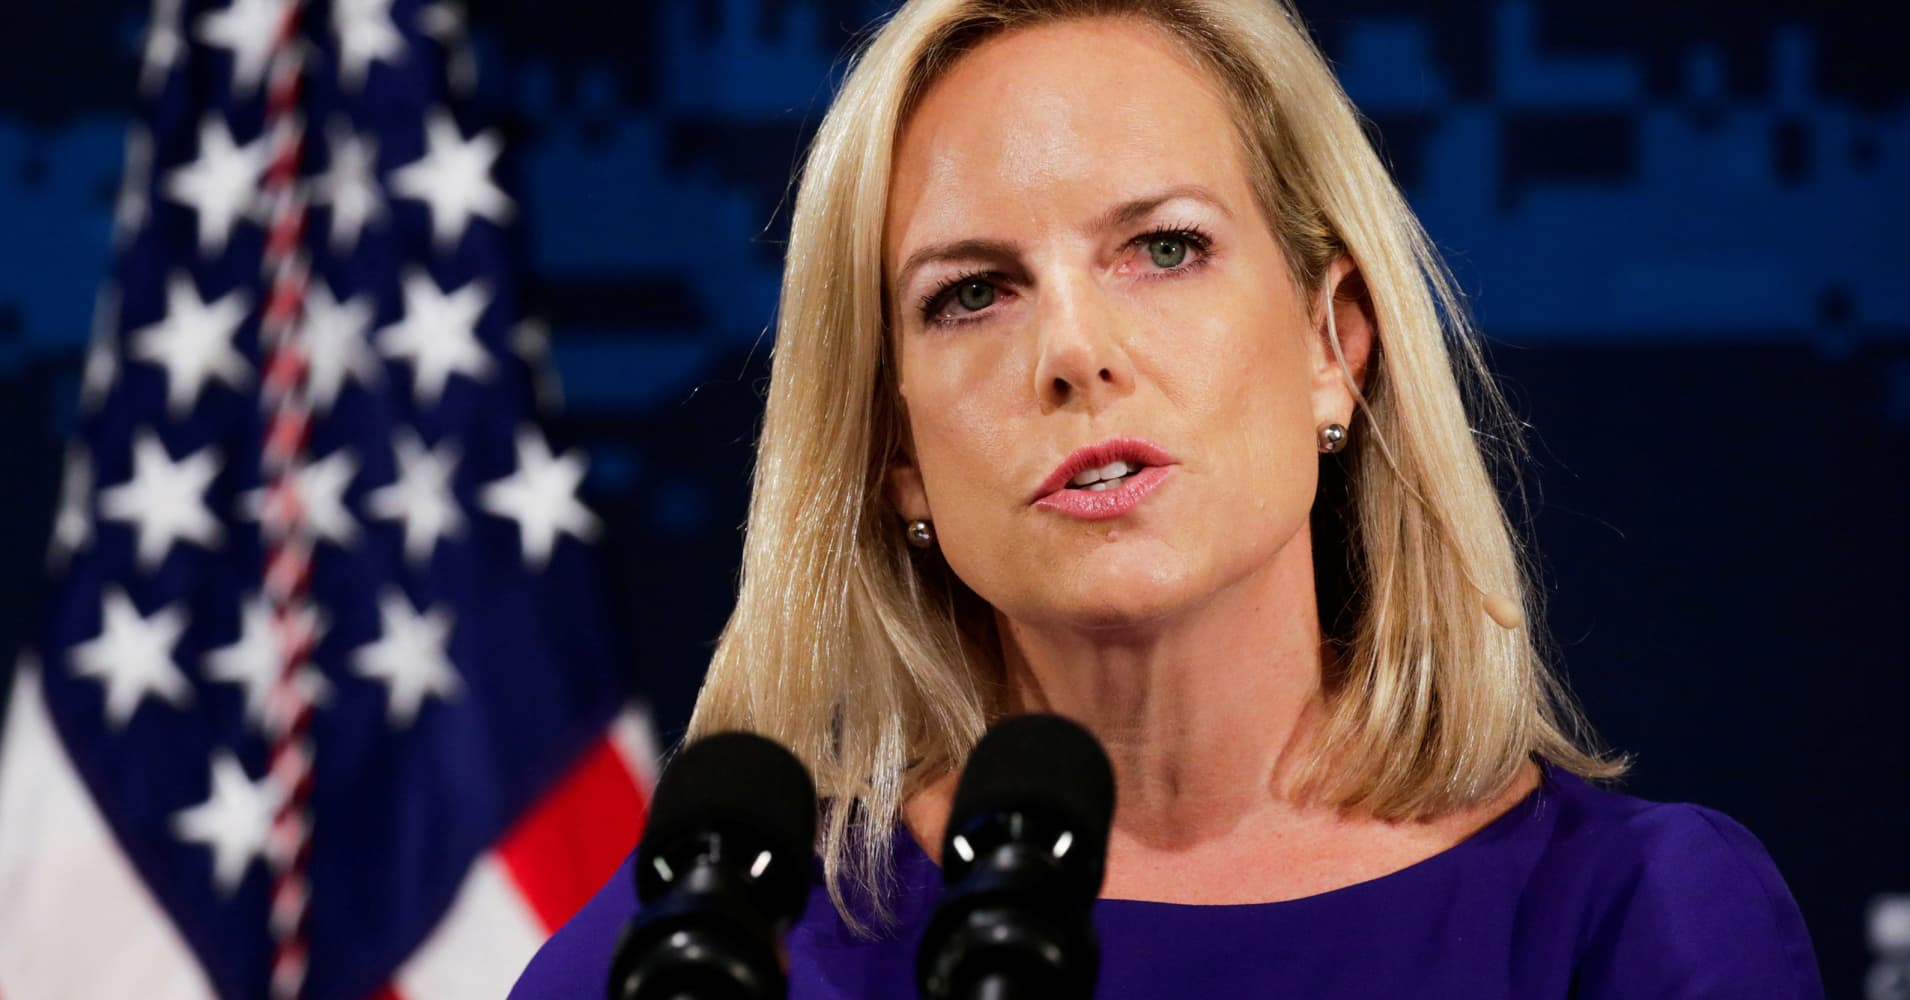 DHS head Nielsen forecasts 'hurricane' cyberattacks, announces response